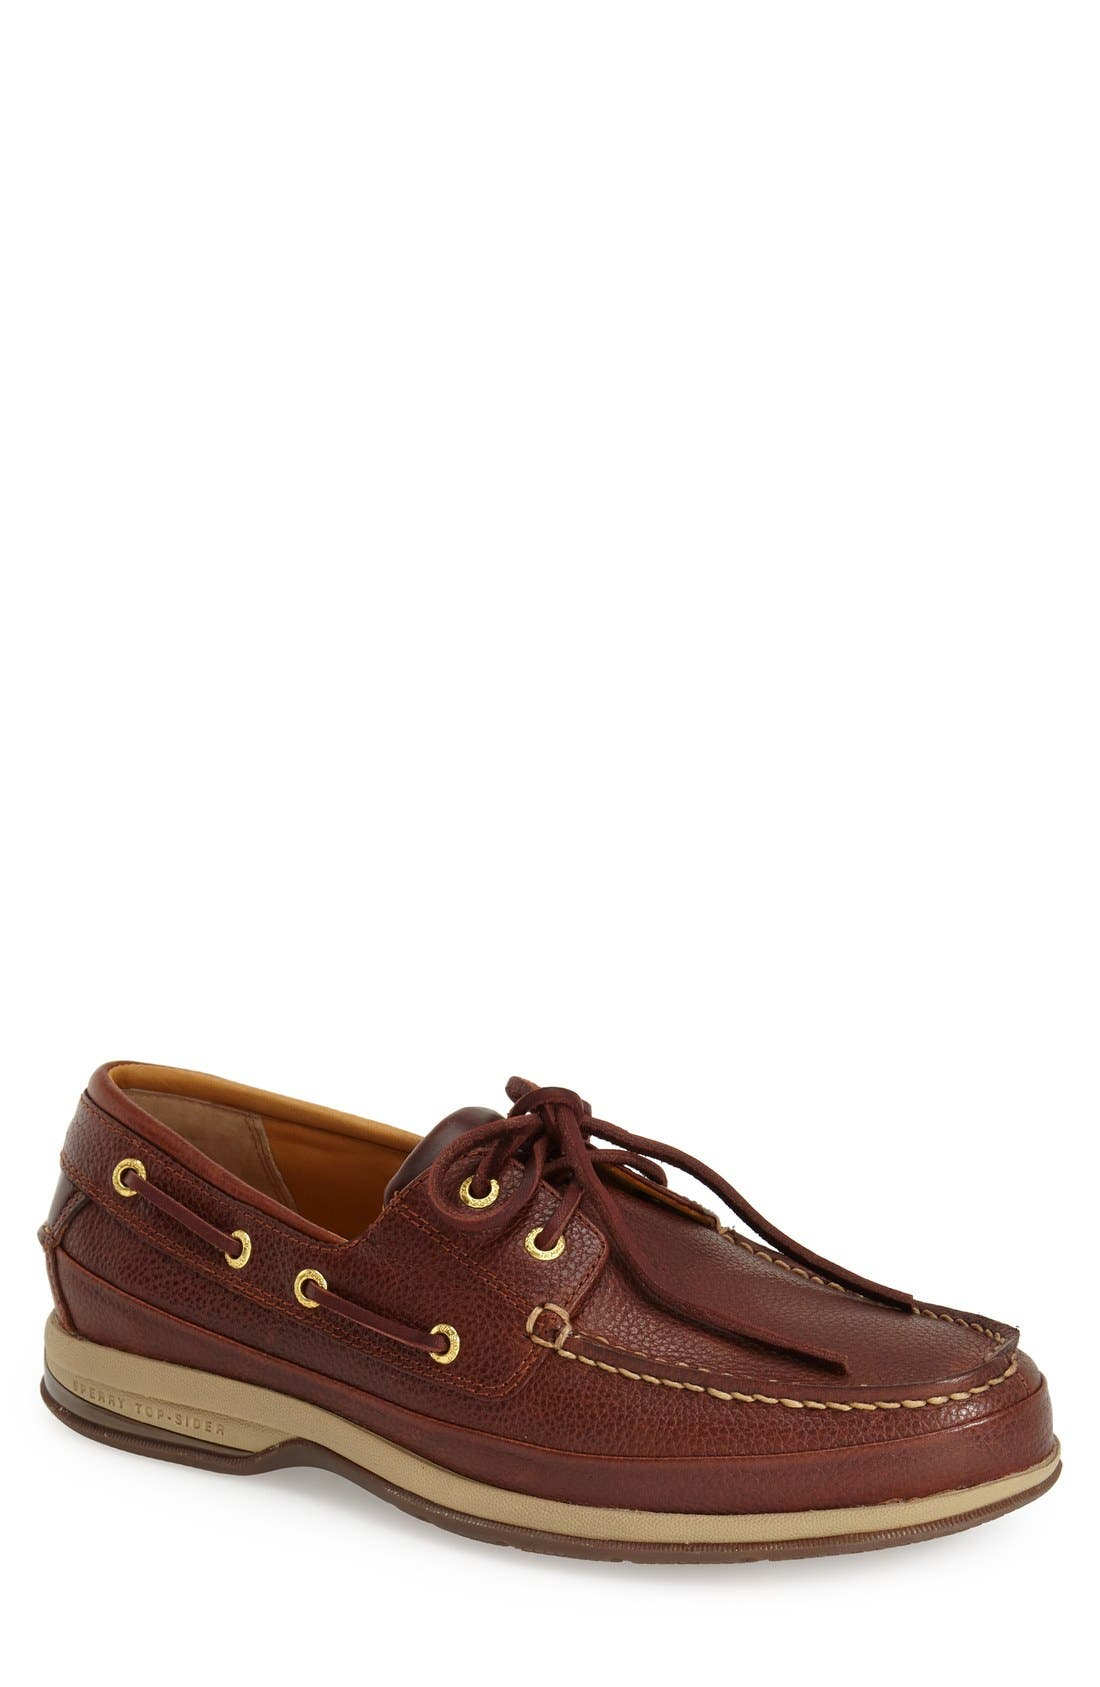 SPERRY 'Gold Cup 2-Eye ASV' Boat Shoe, Main, color, 200